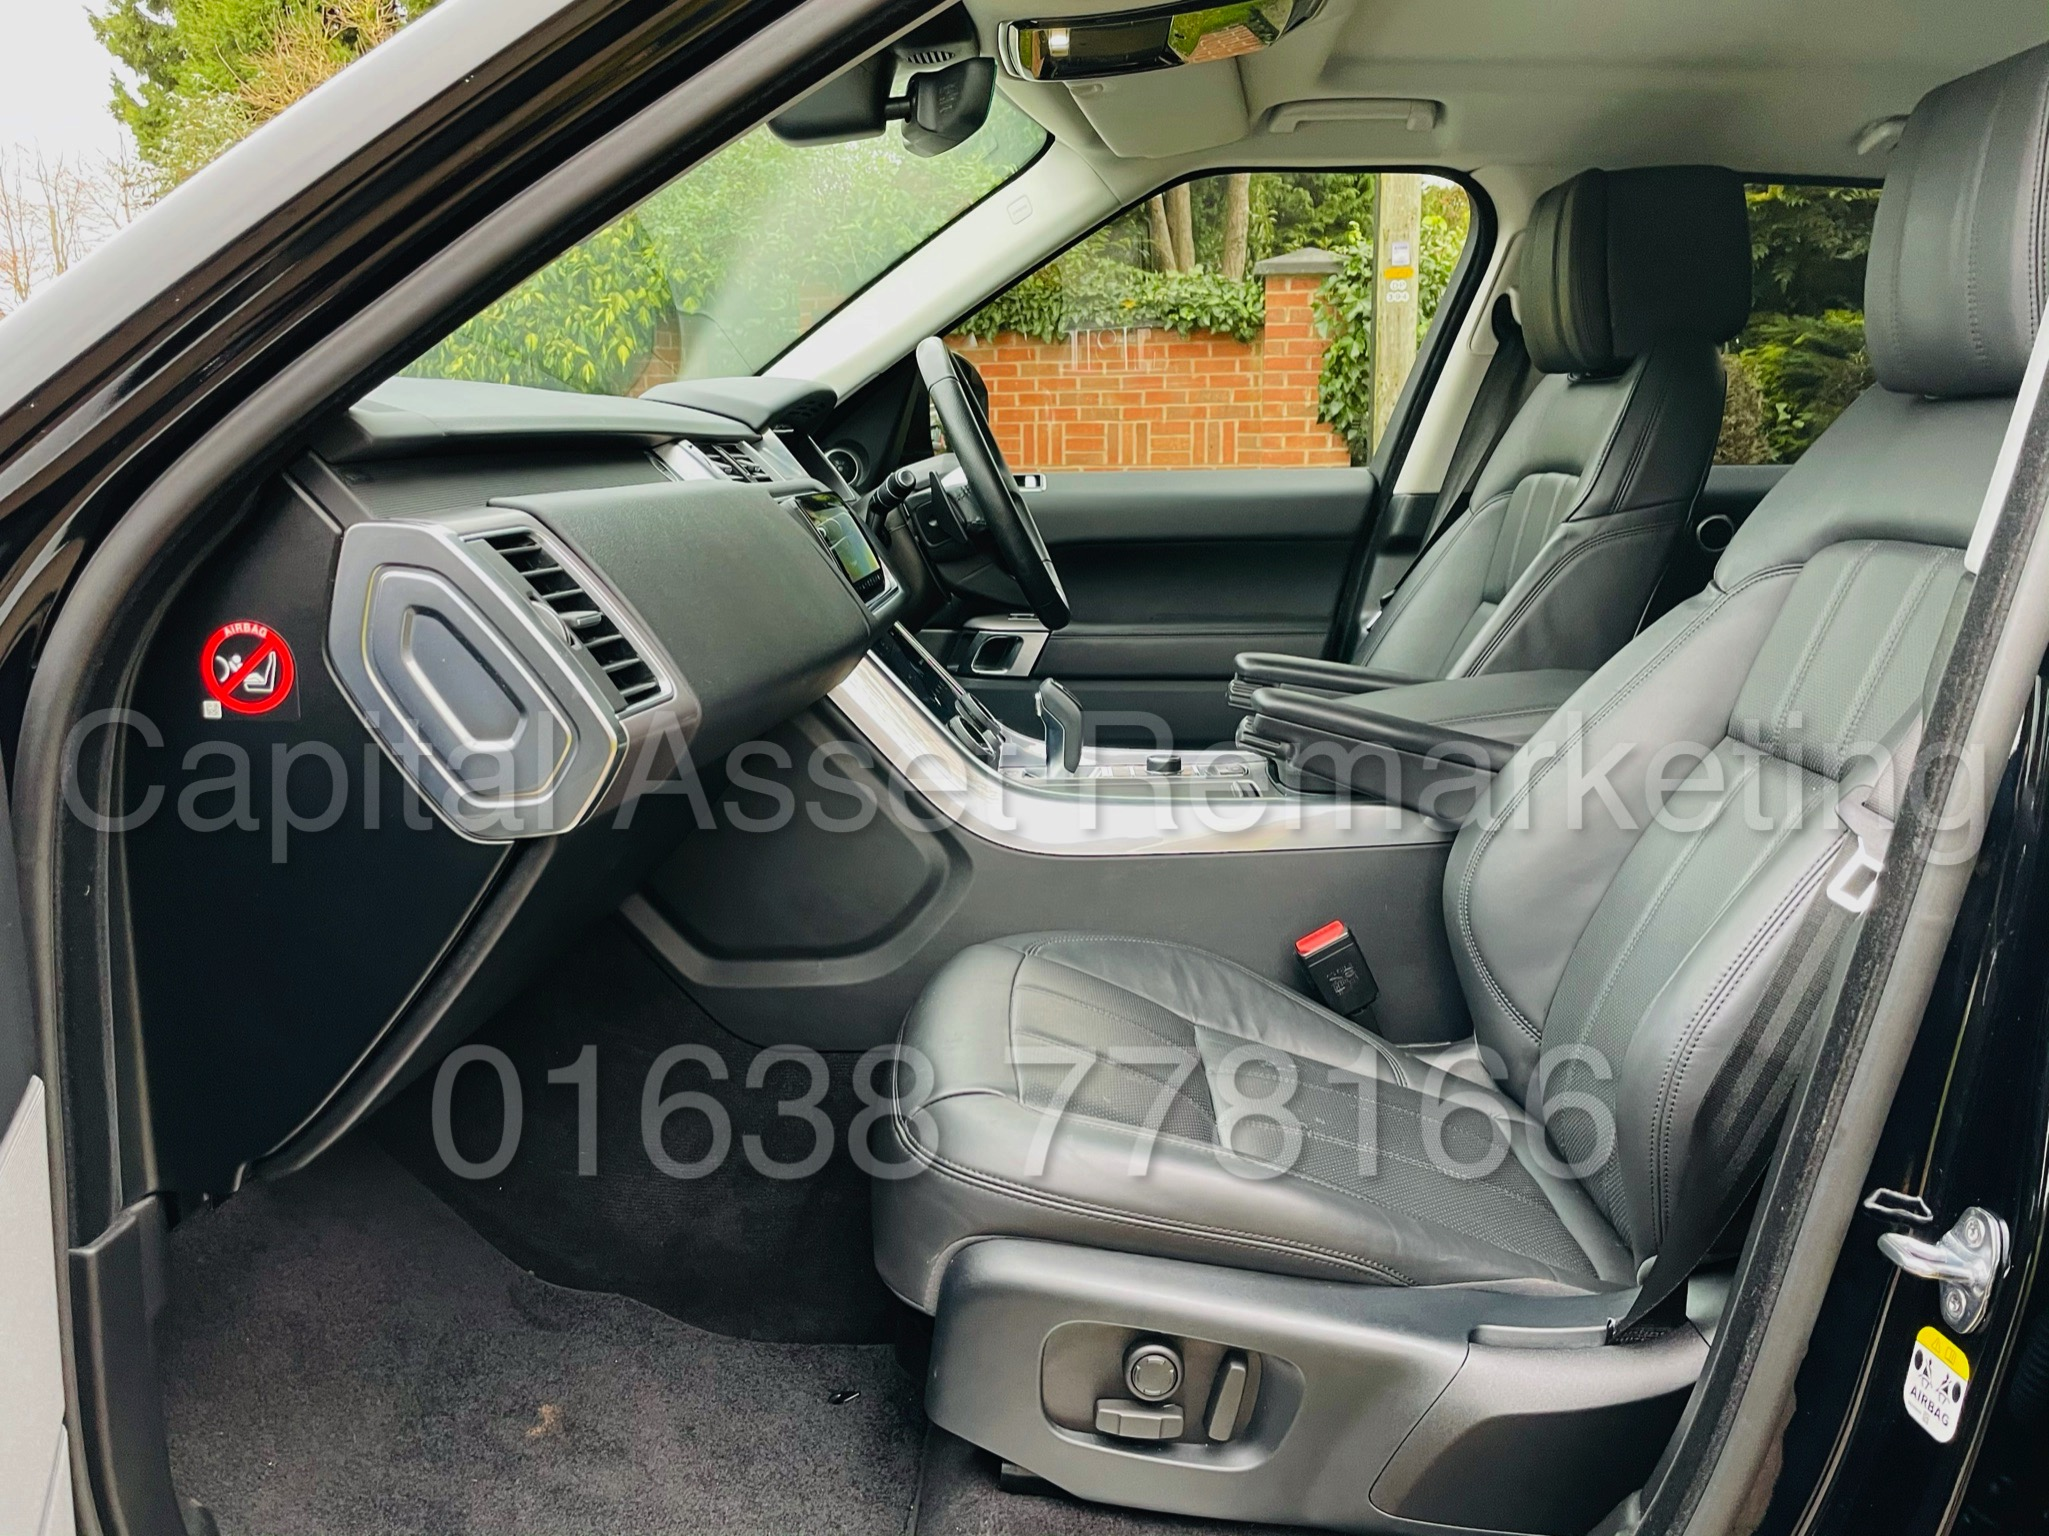 RANGE ROVER SPORT *HSE EDITION* SUV (2019 MODEL) '3.0 SDV6 - 306 BHP - 8 SPEED AUTO' *FULLY LOADED* - Image 24 of 56